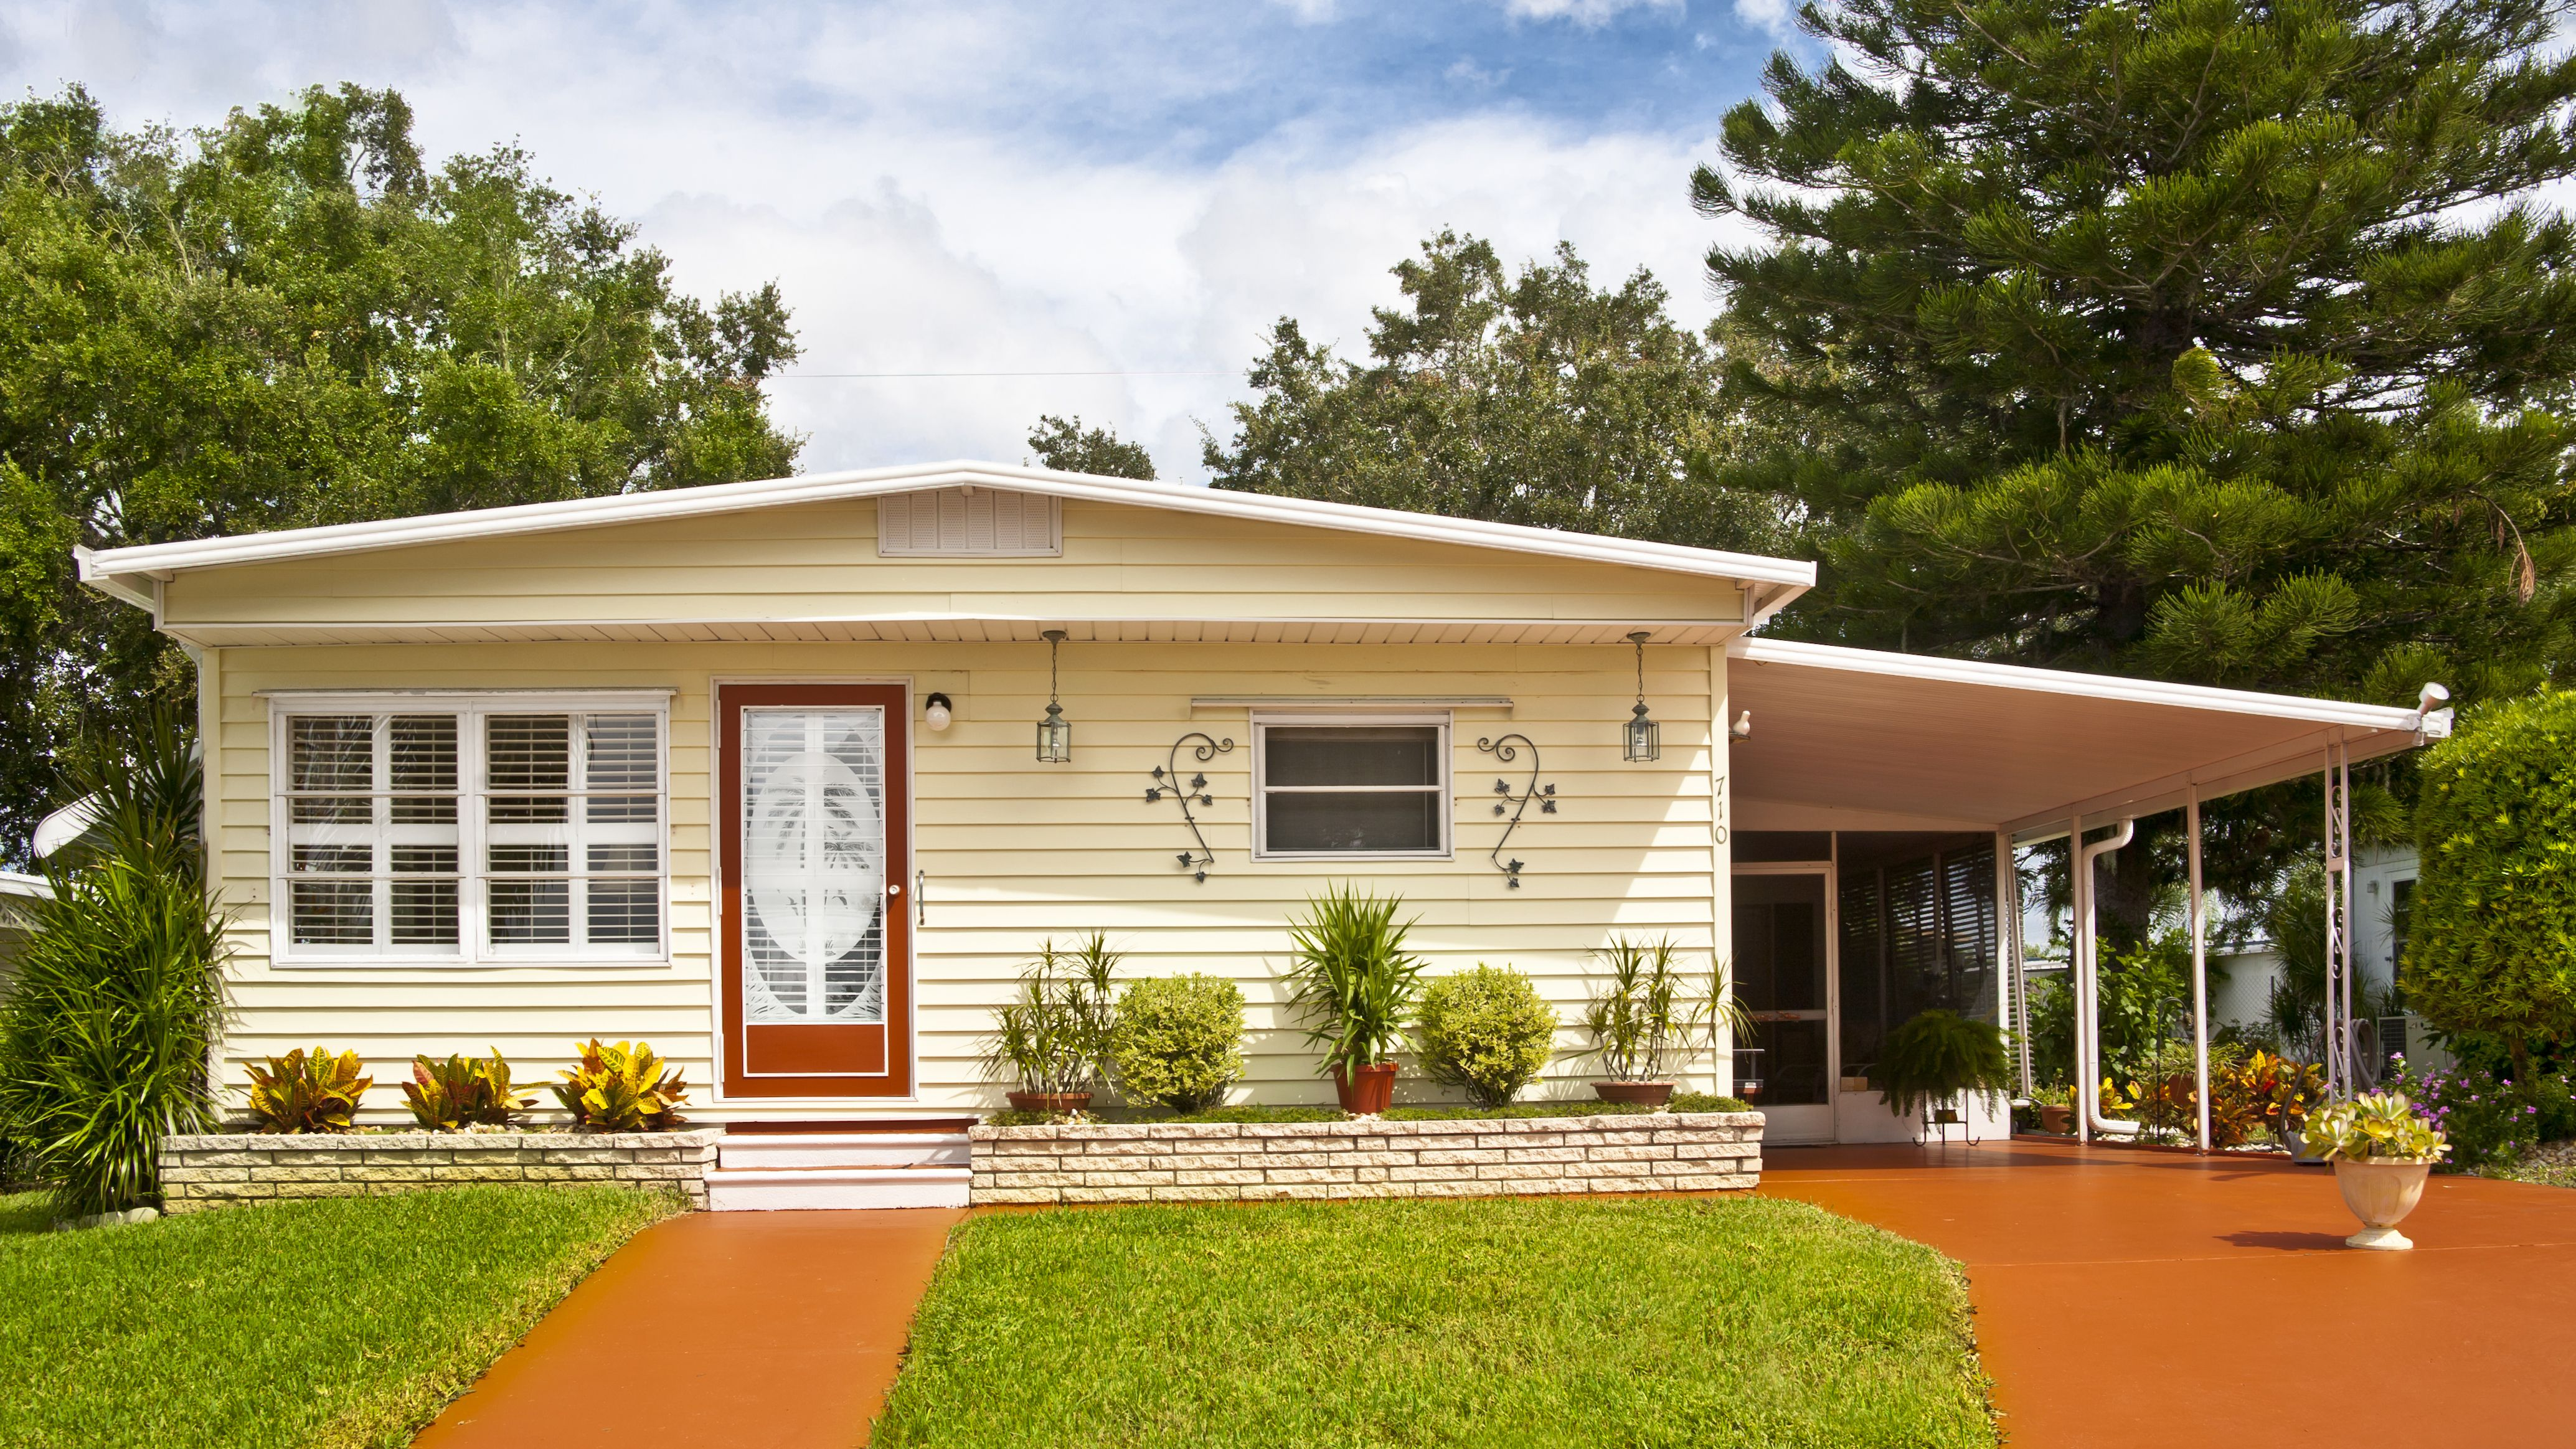 How to Get a Manufactured or Mobile Home Loan